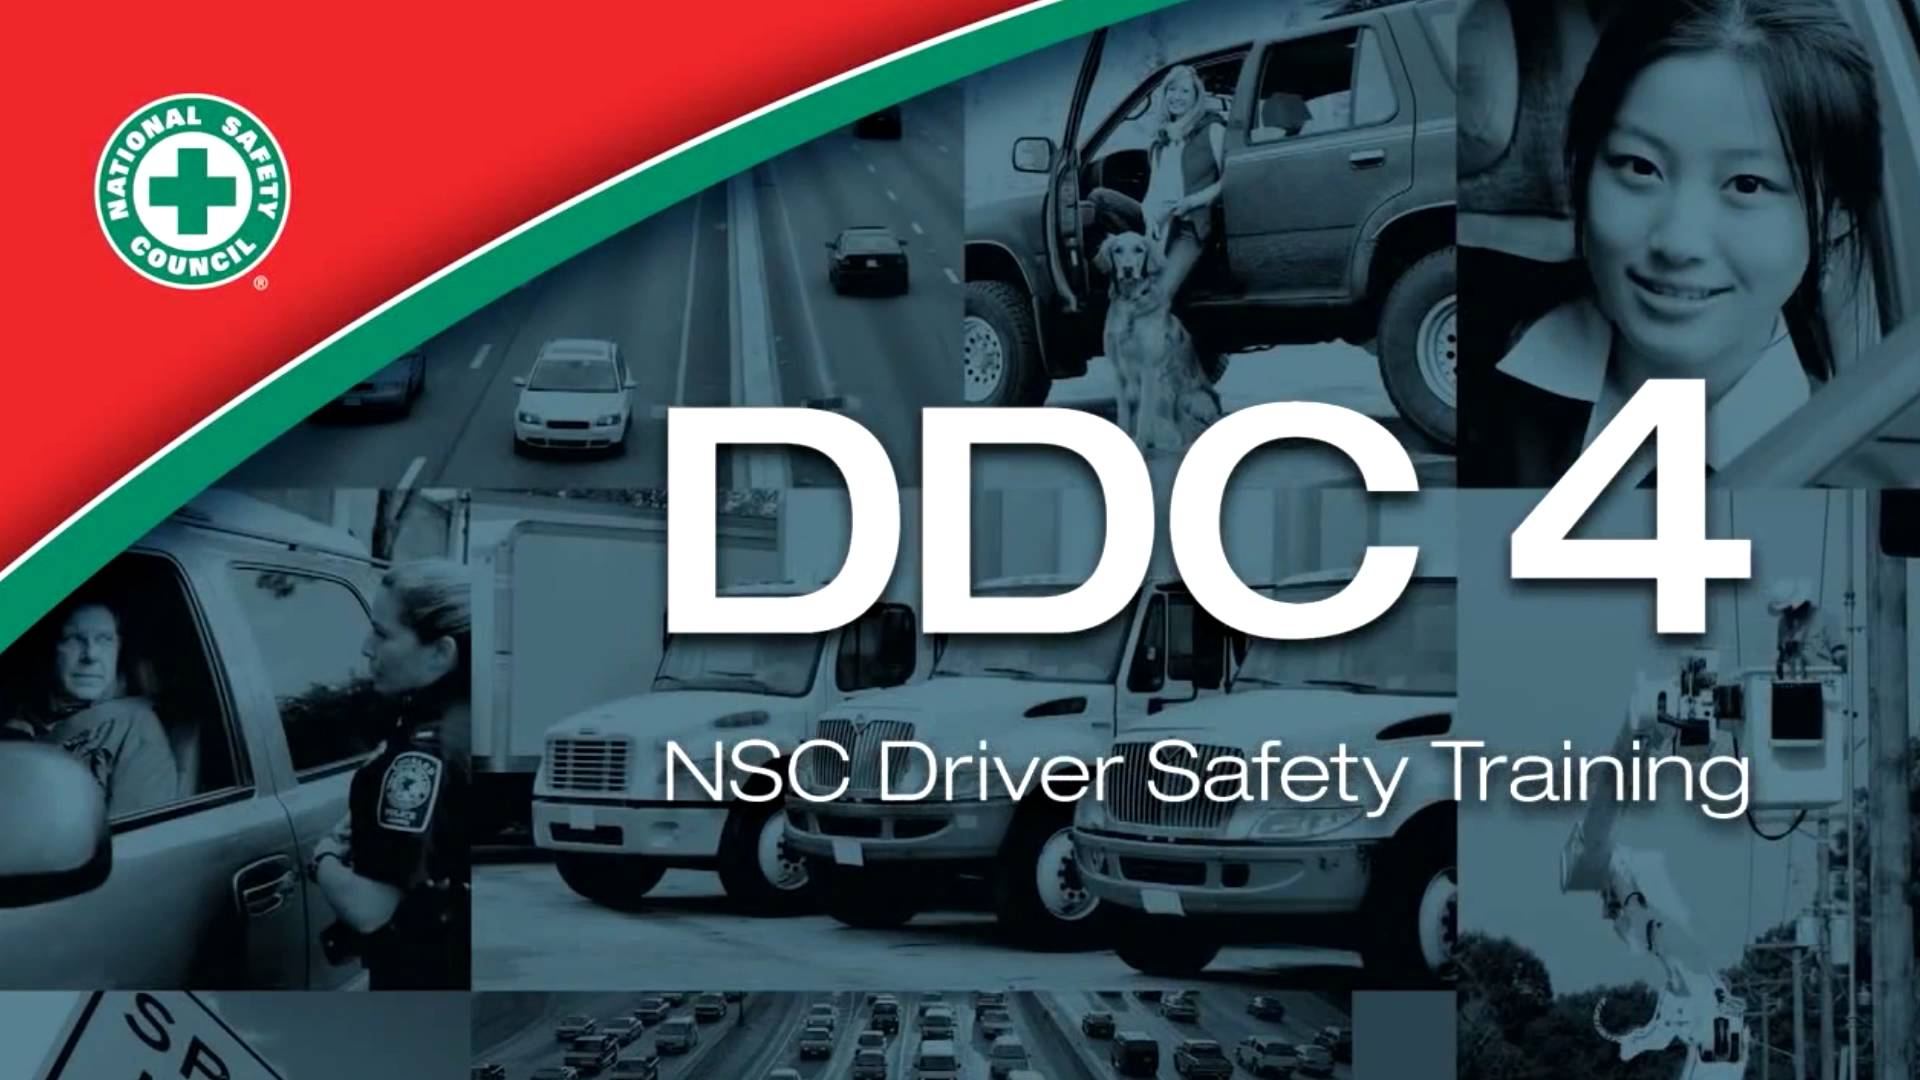 DDC4 NSC Driver Safety Training